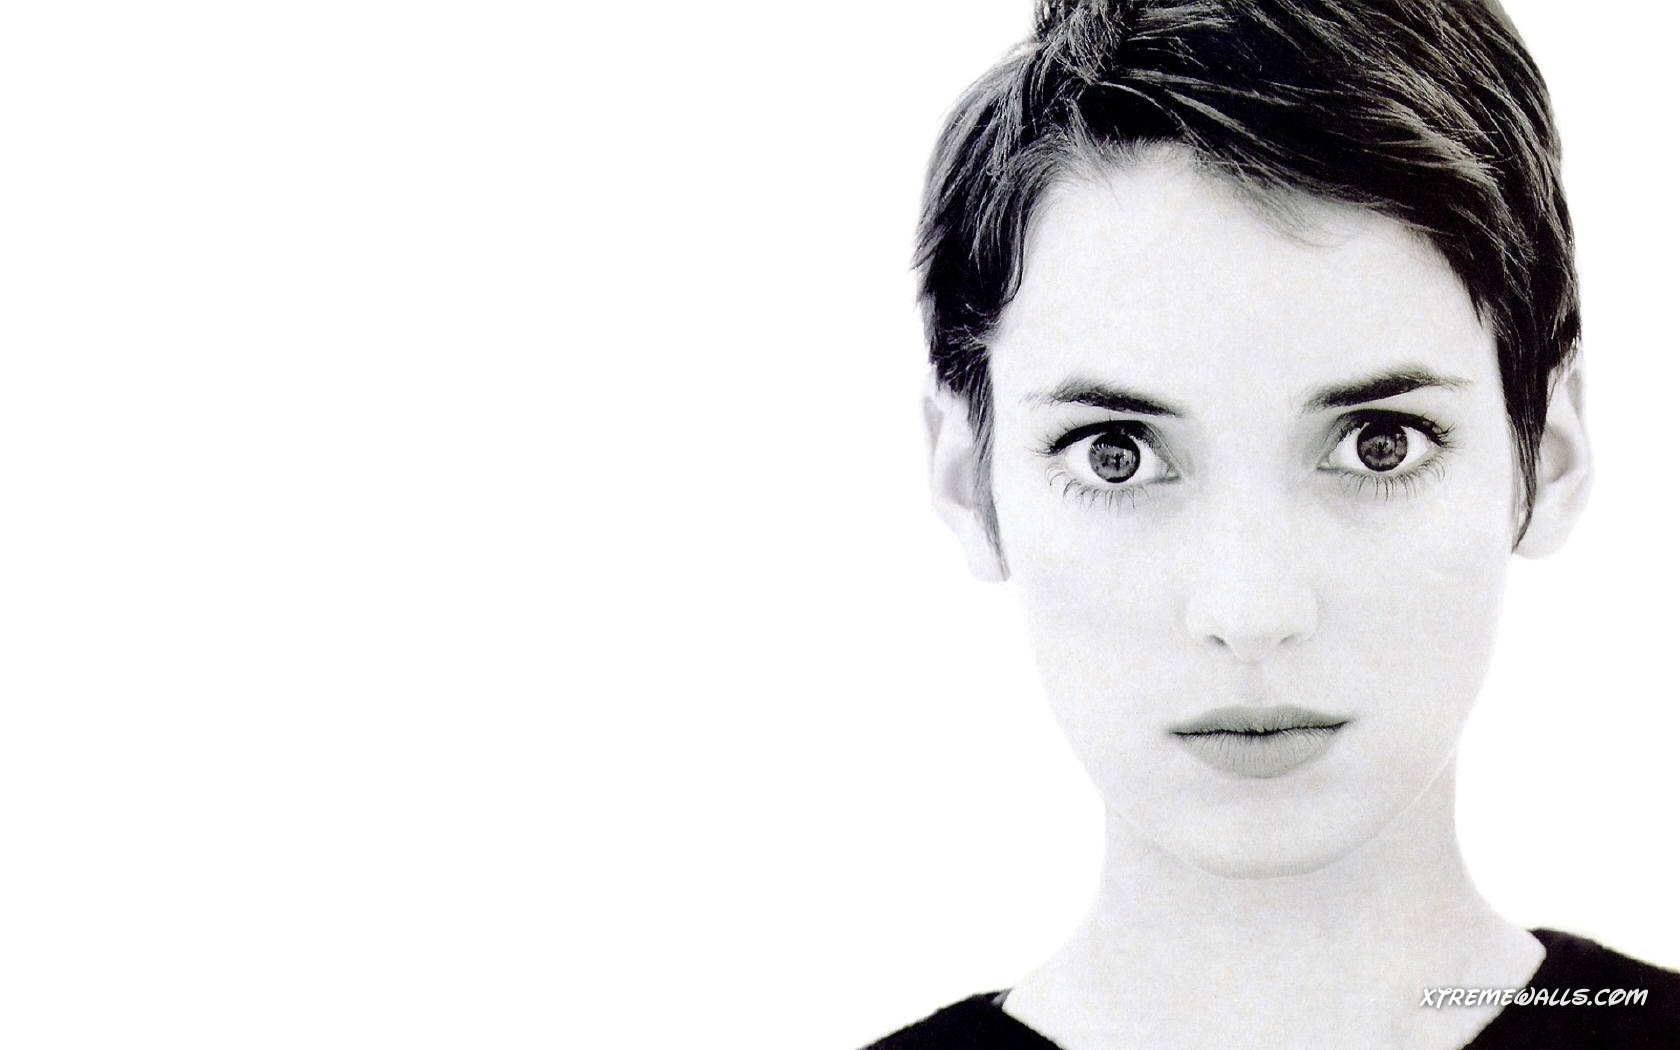 1680x1050 - Winona Ryder Wallpapers 11